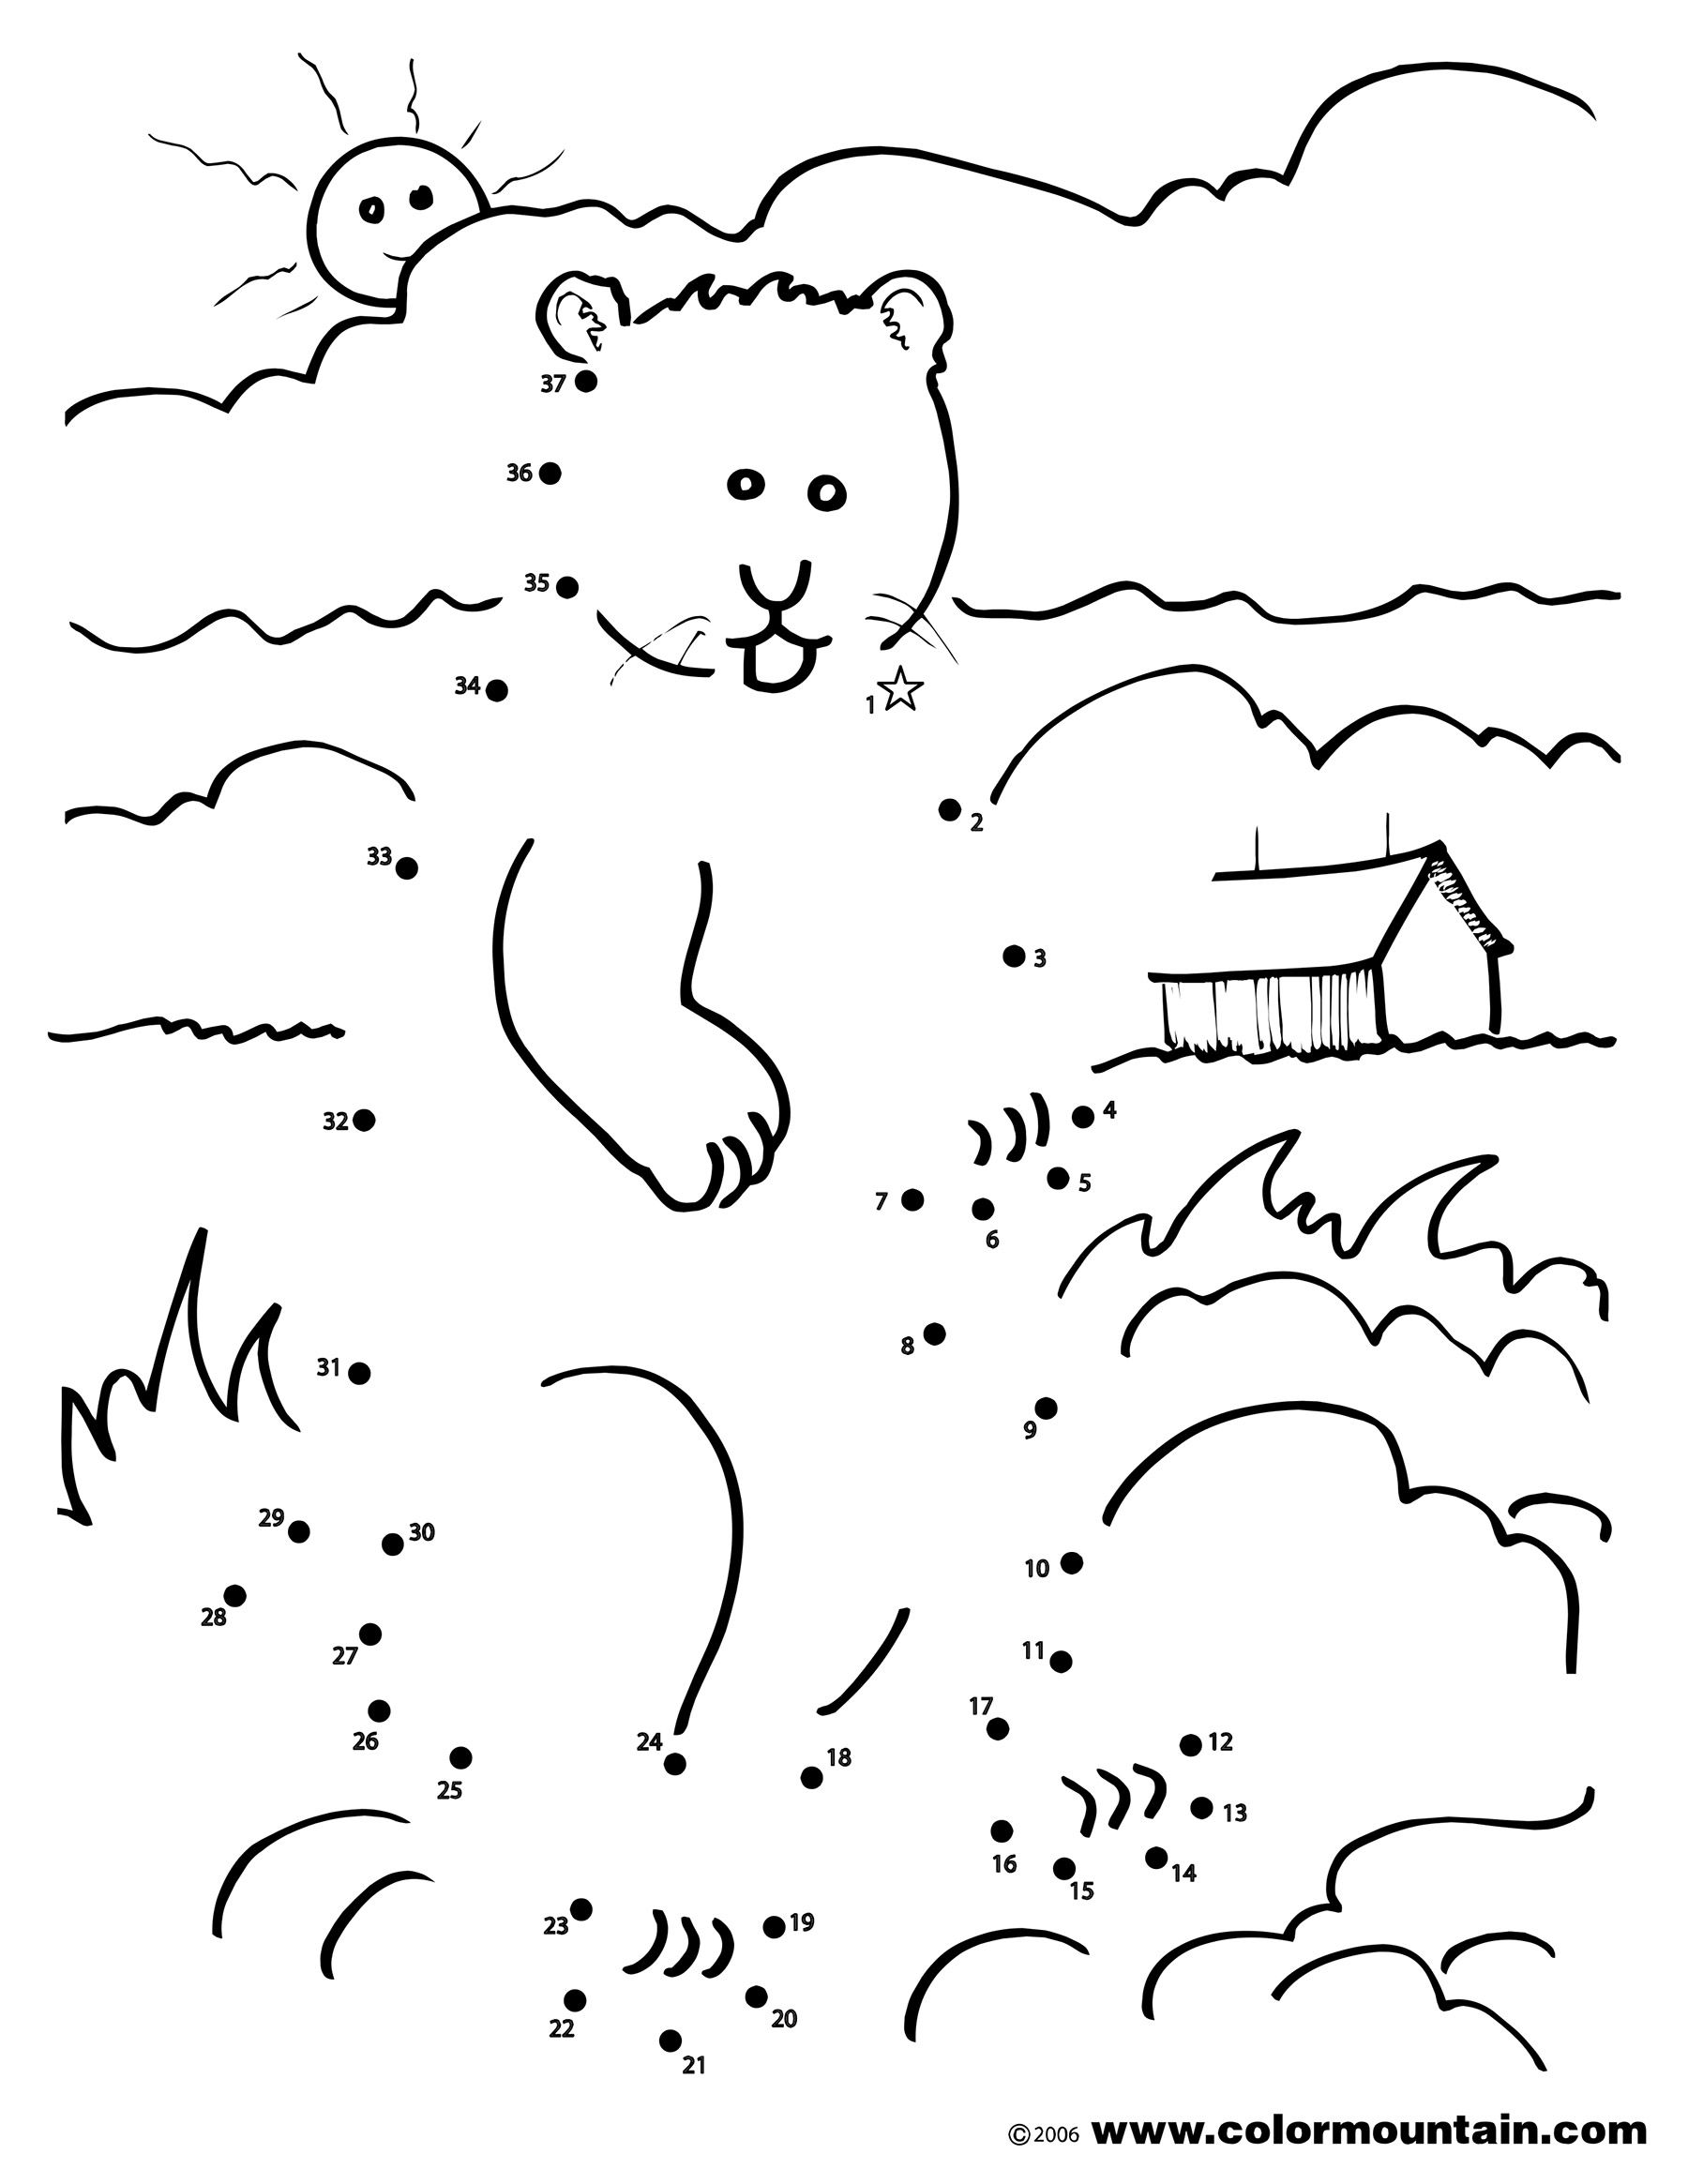 groundhog coloring dot to dot coloring page happy groundhog day